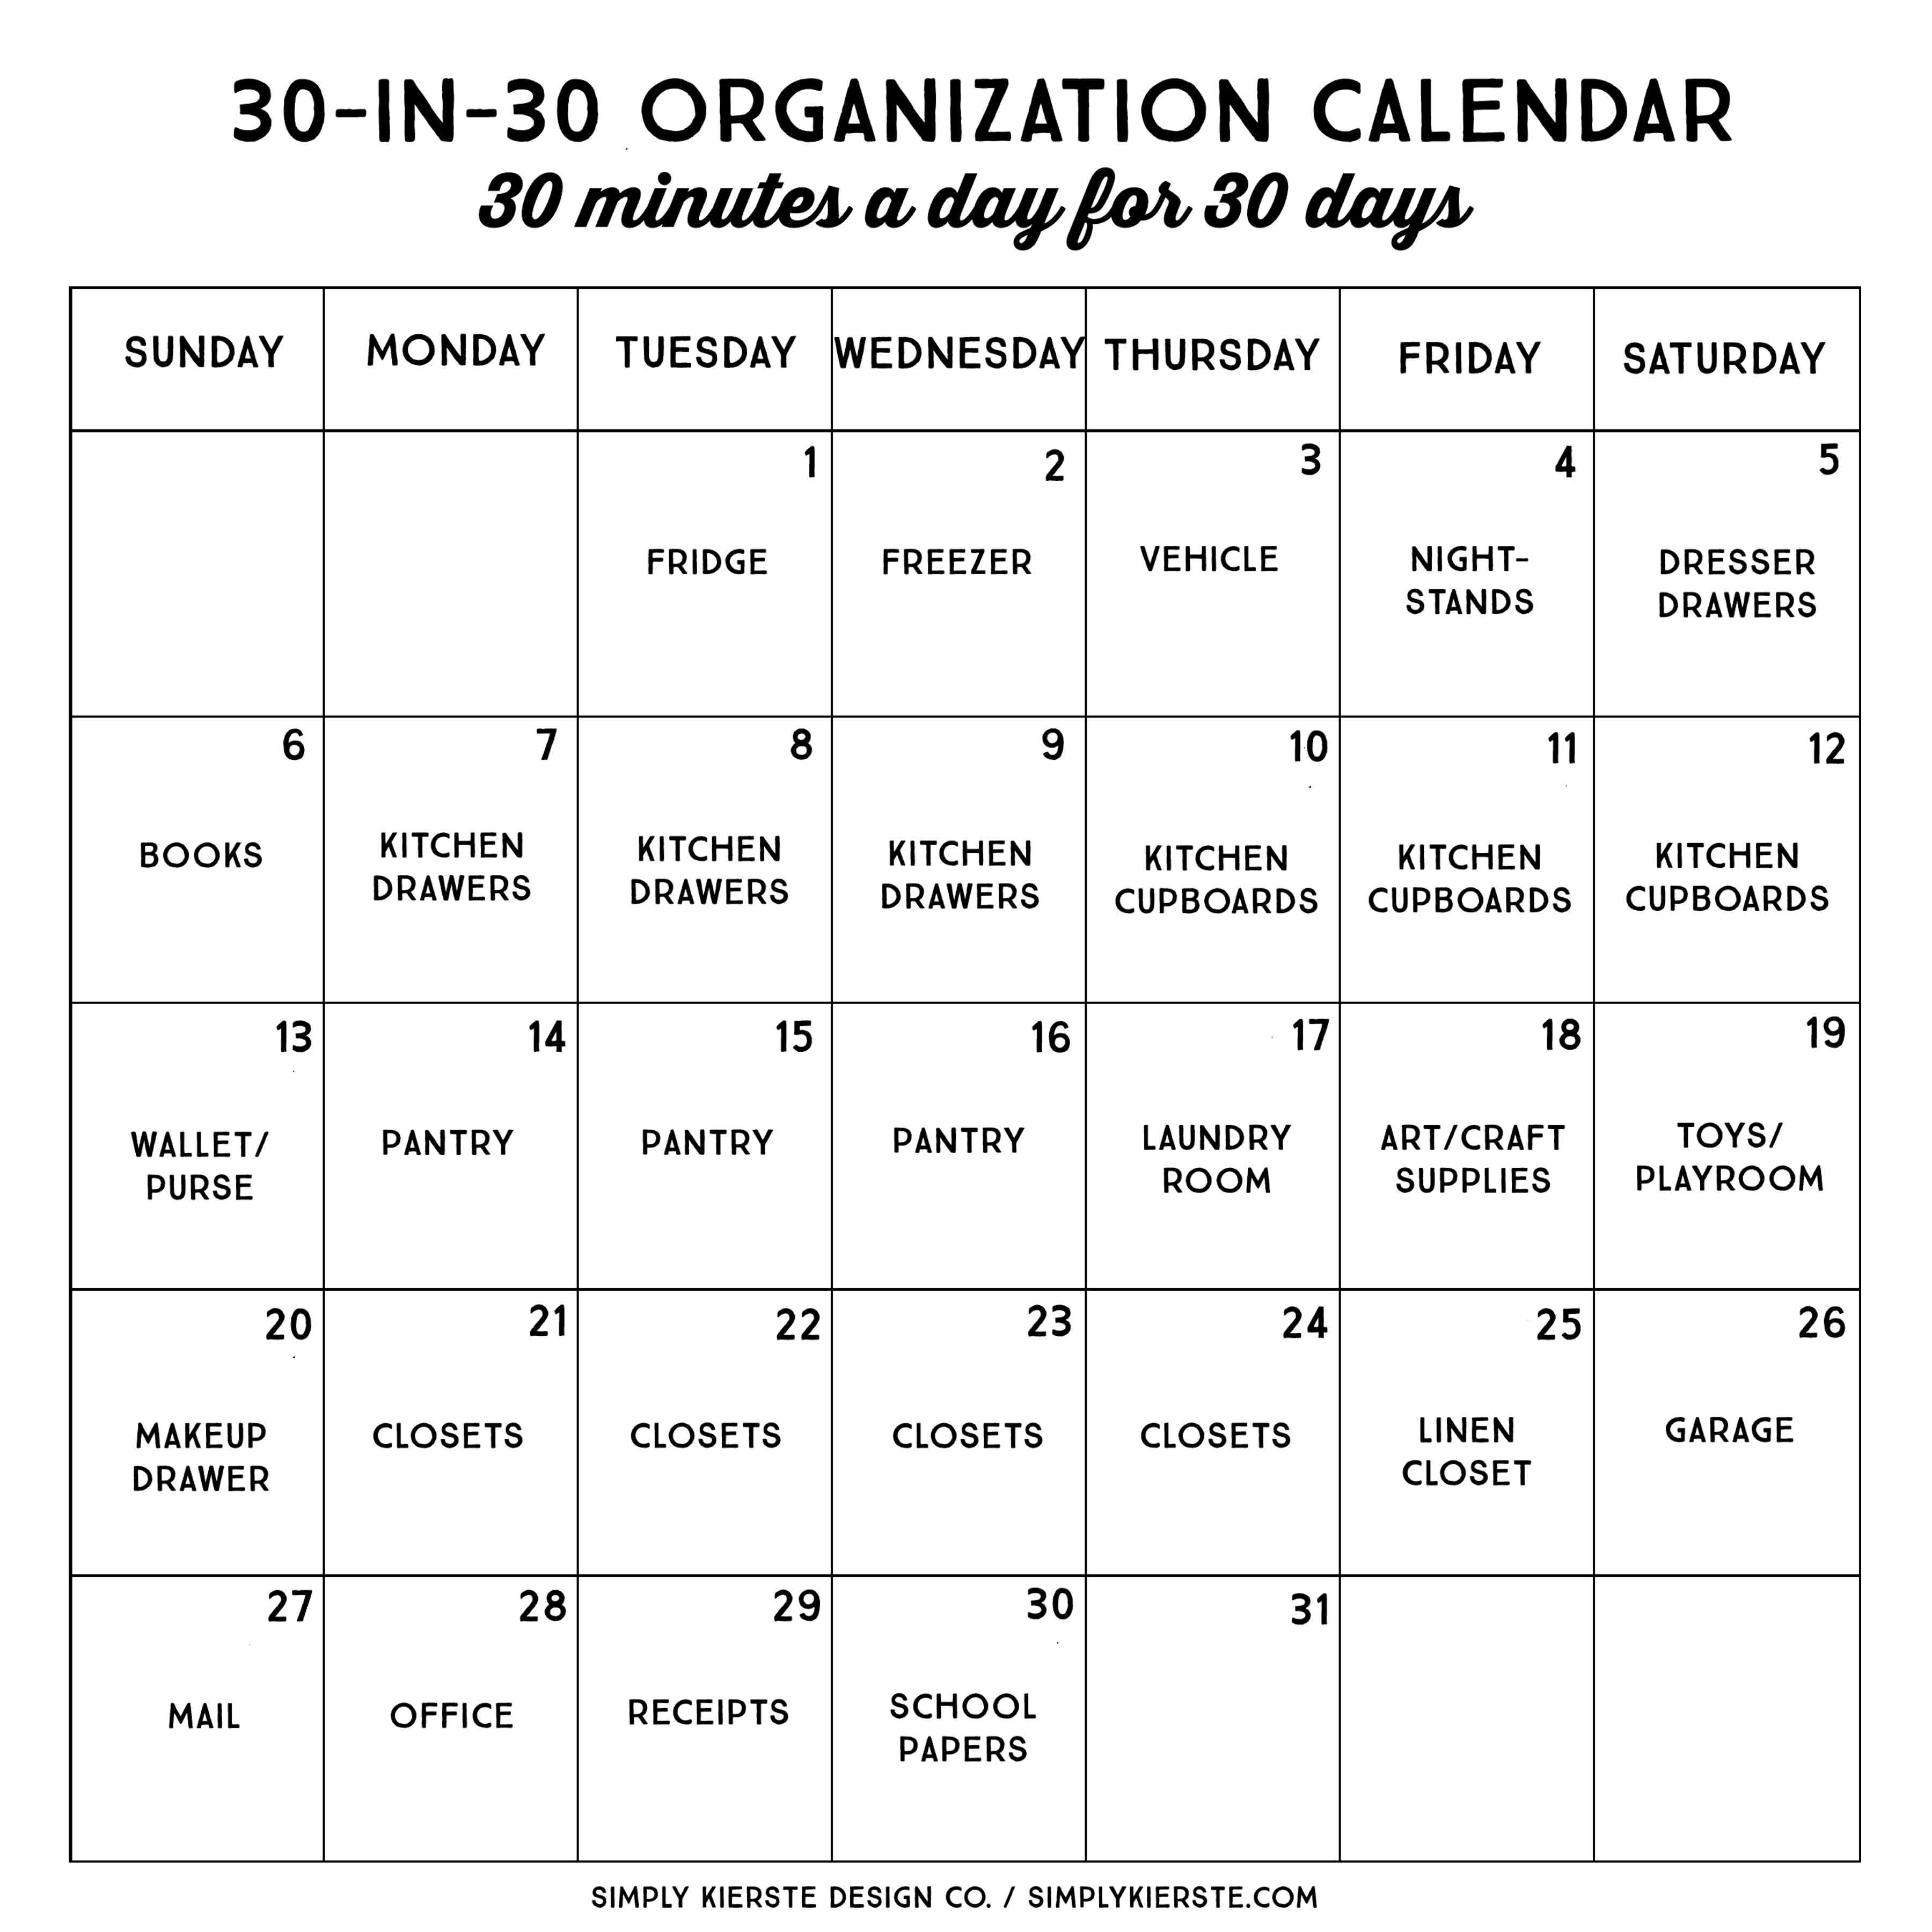 30 Minute, 30 Day Organization Calendar | Simply Kierste intended for 30 Day Calander